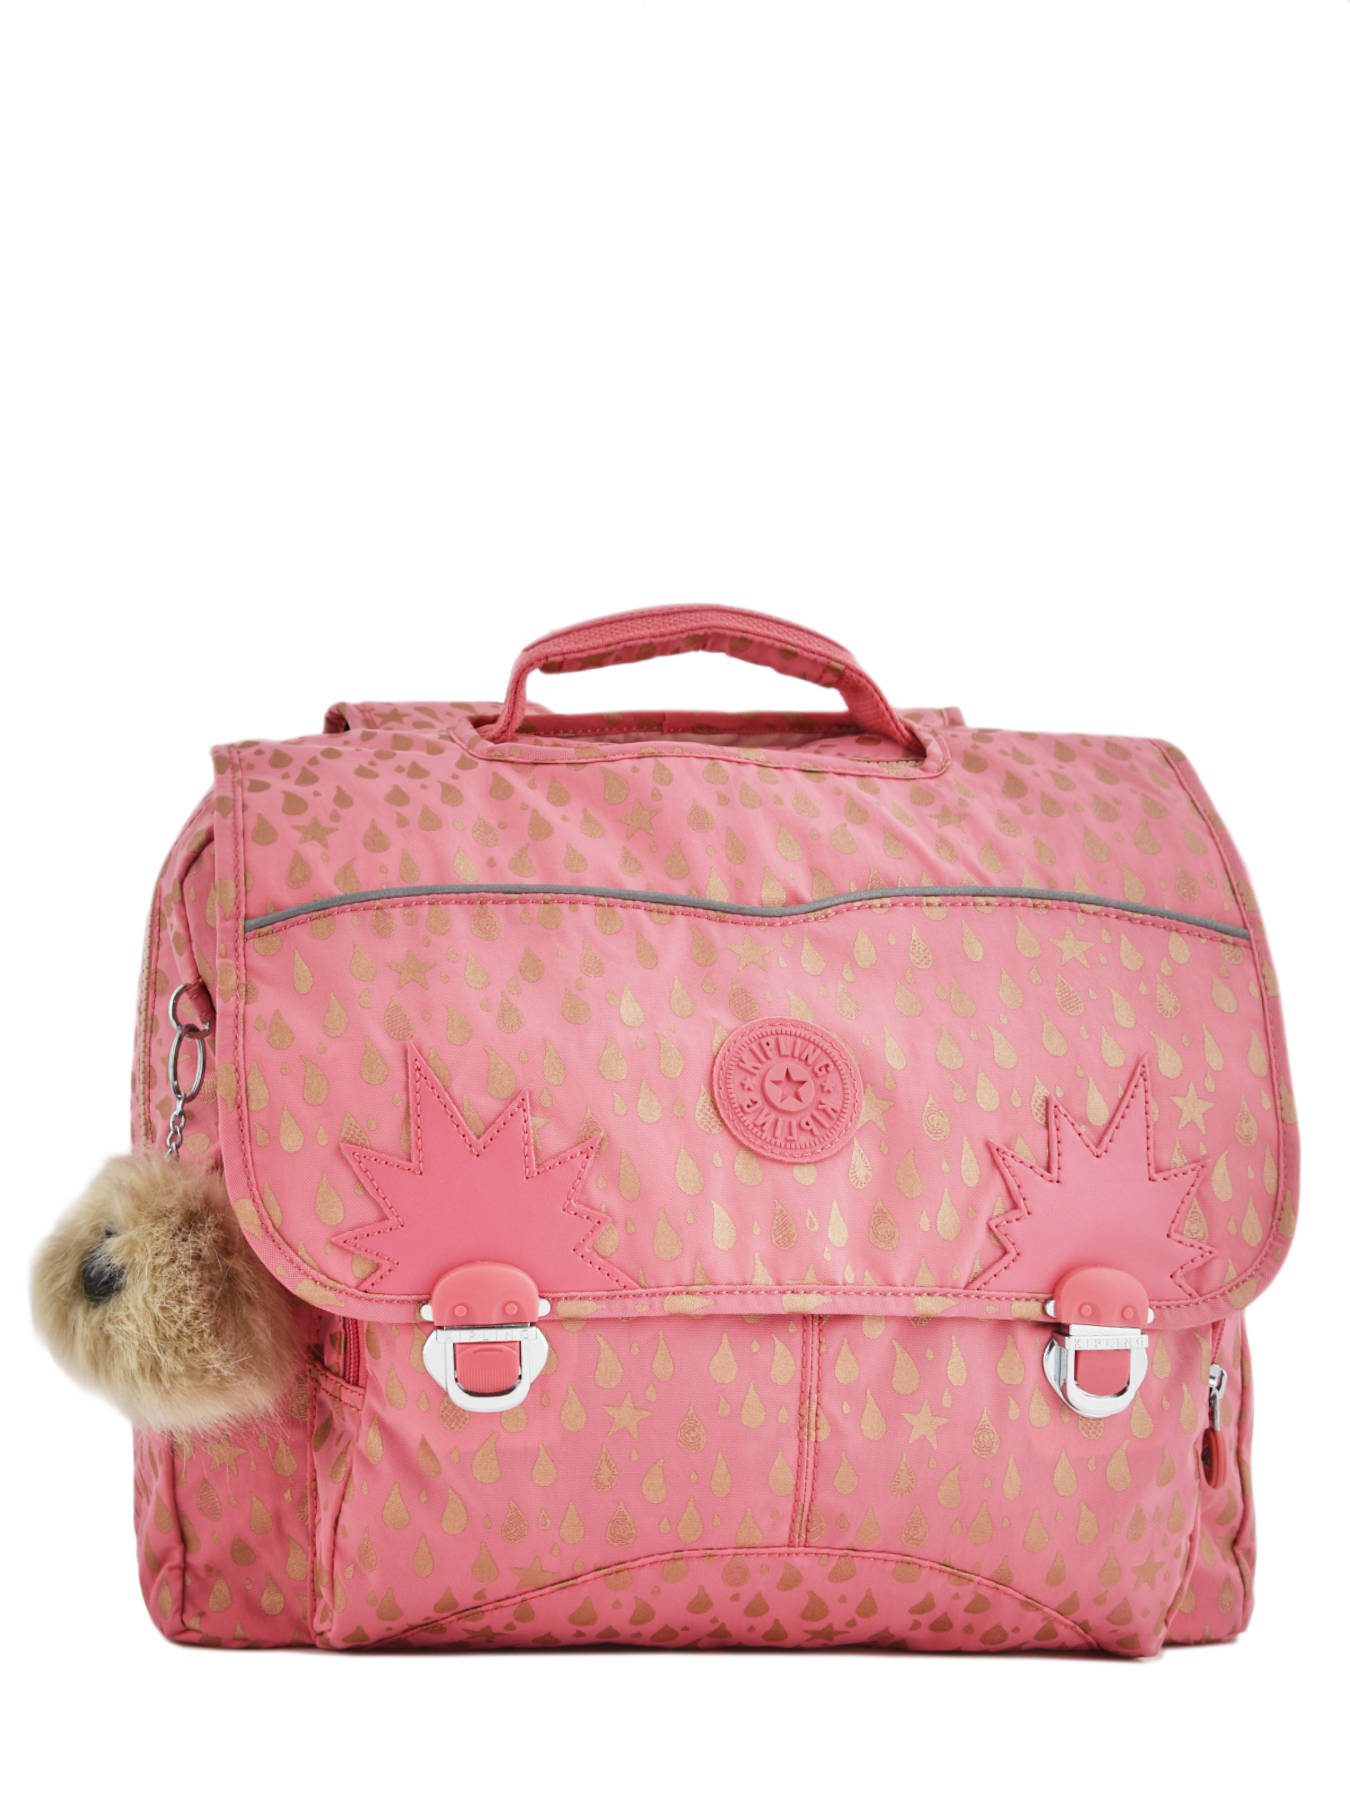 ccd1ad9f08 Satchel 2 Compartments Kipling Pink back to school 21092 ...